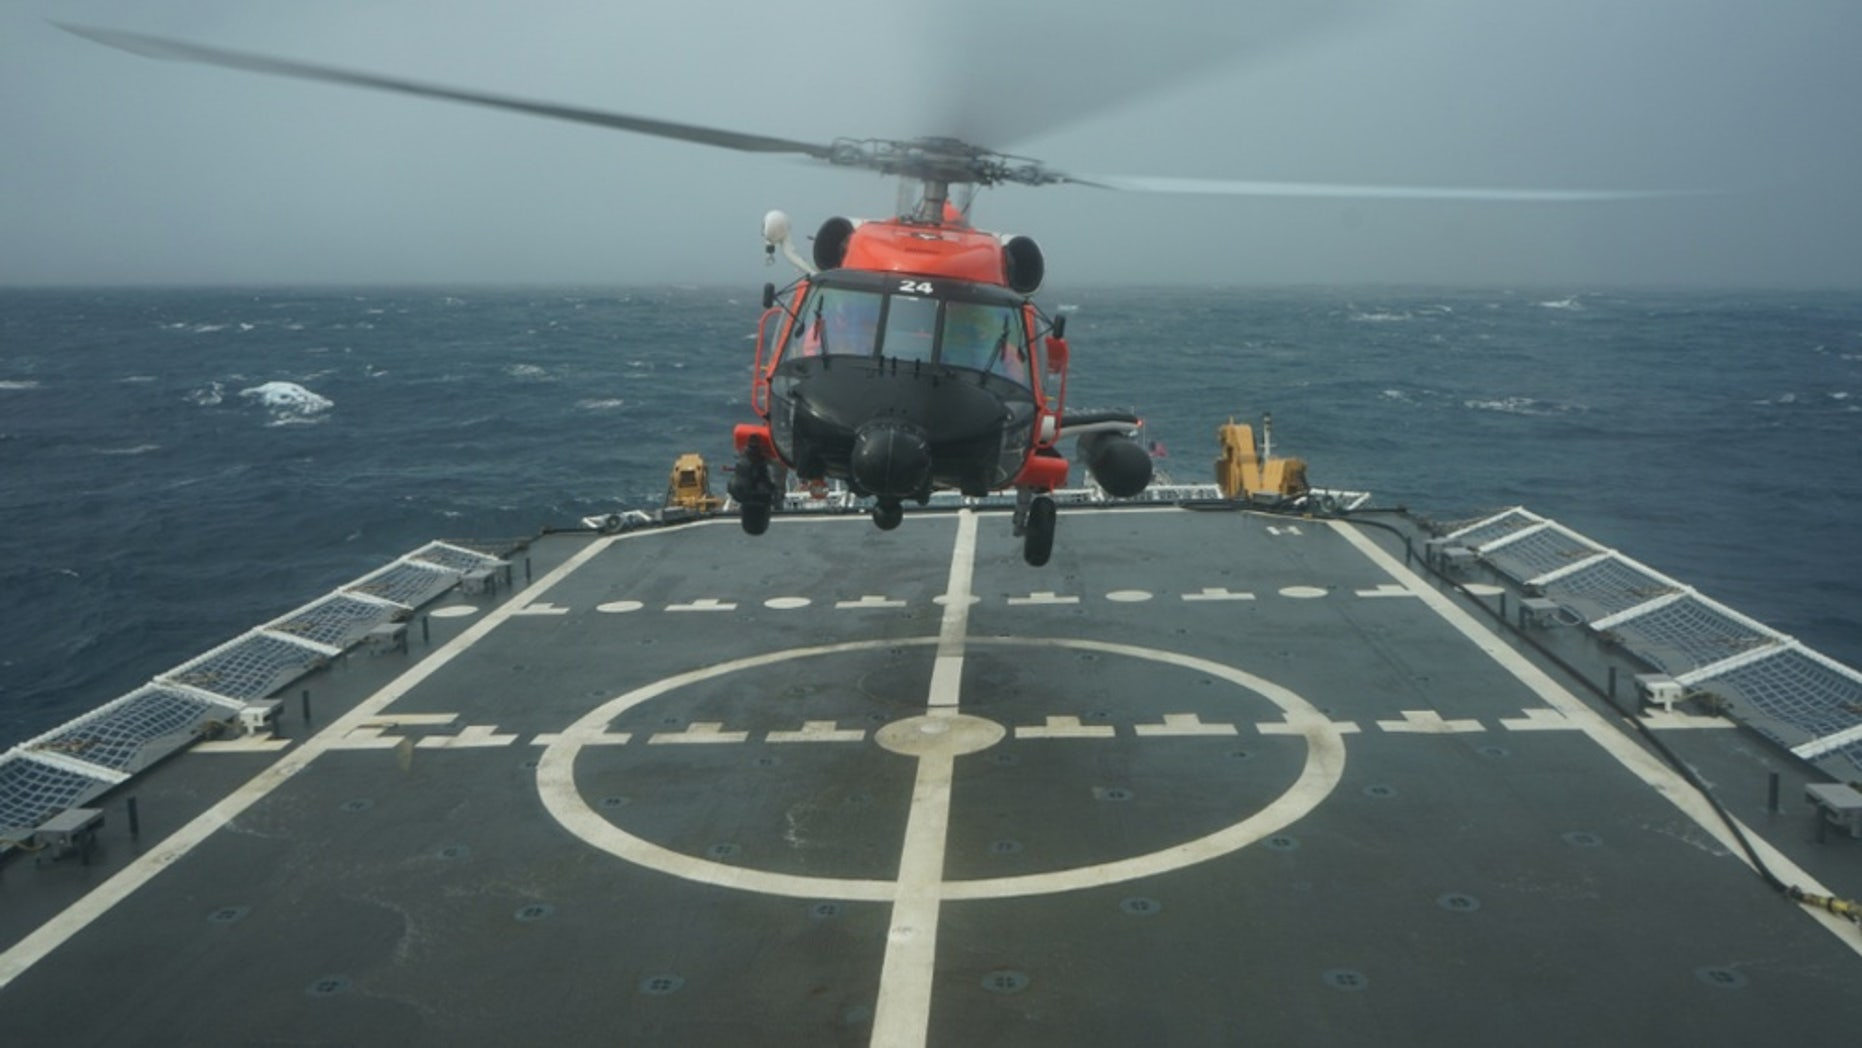 A Coast Guard rescue helicopter takes off from the deck of the Cutter Hamilton to continue searching for a missing civilian aircraft Oct. 27, 2018, 110 miles east of Charleston, South Carolina.